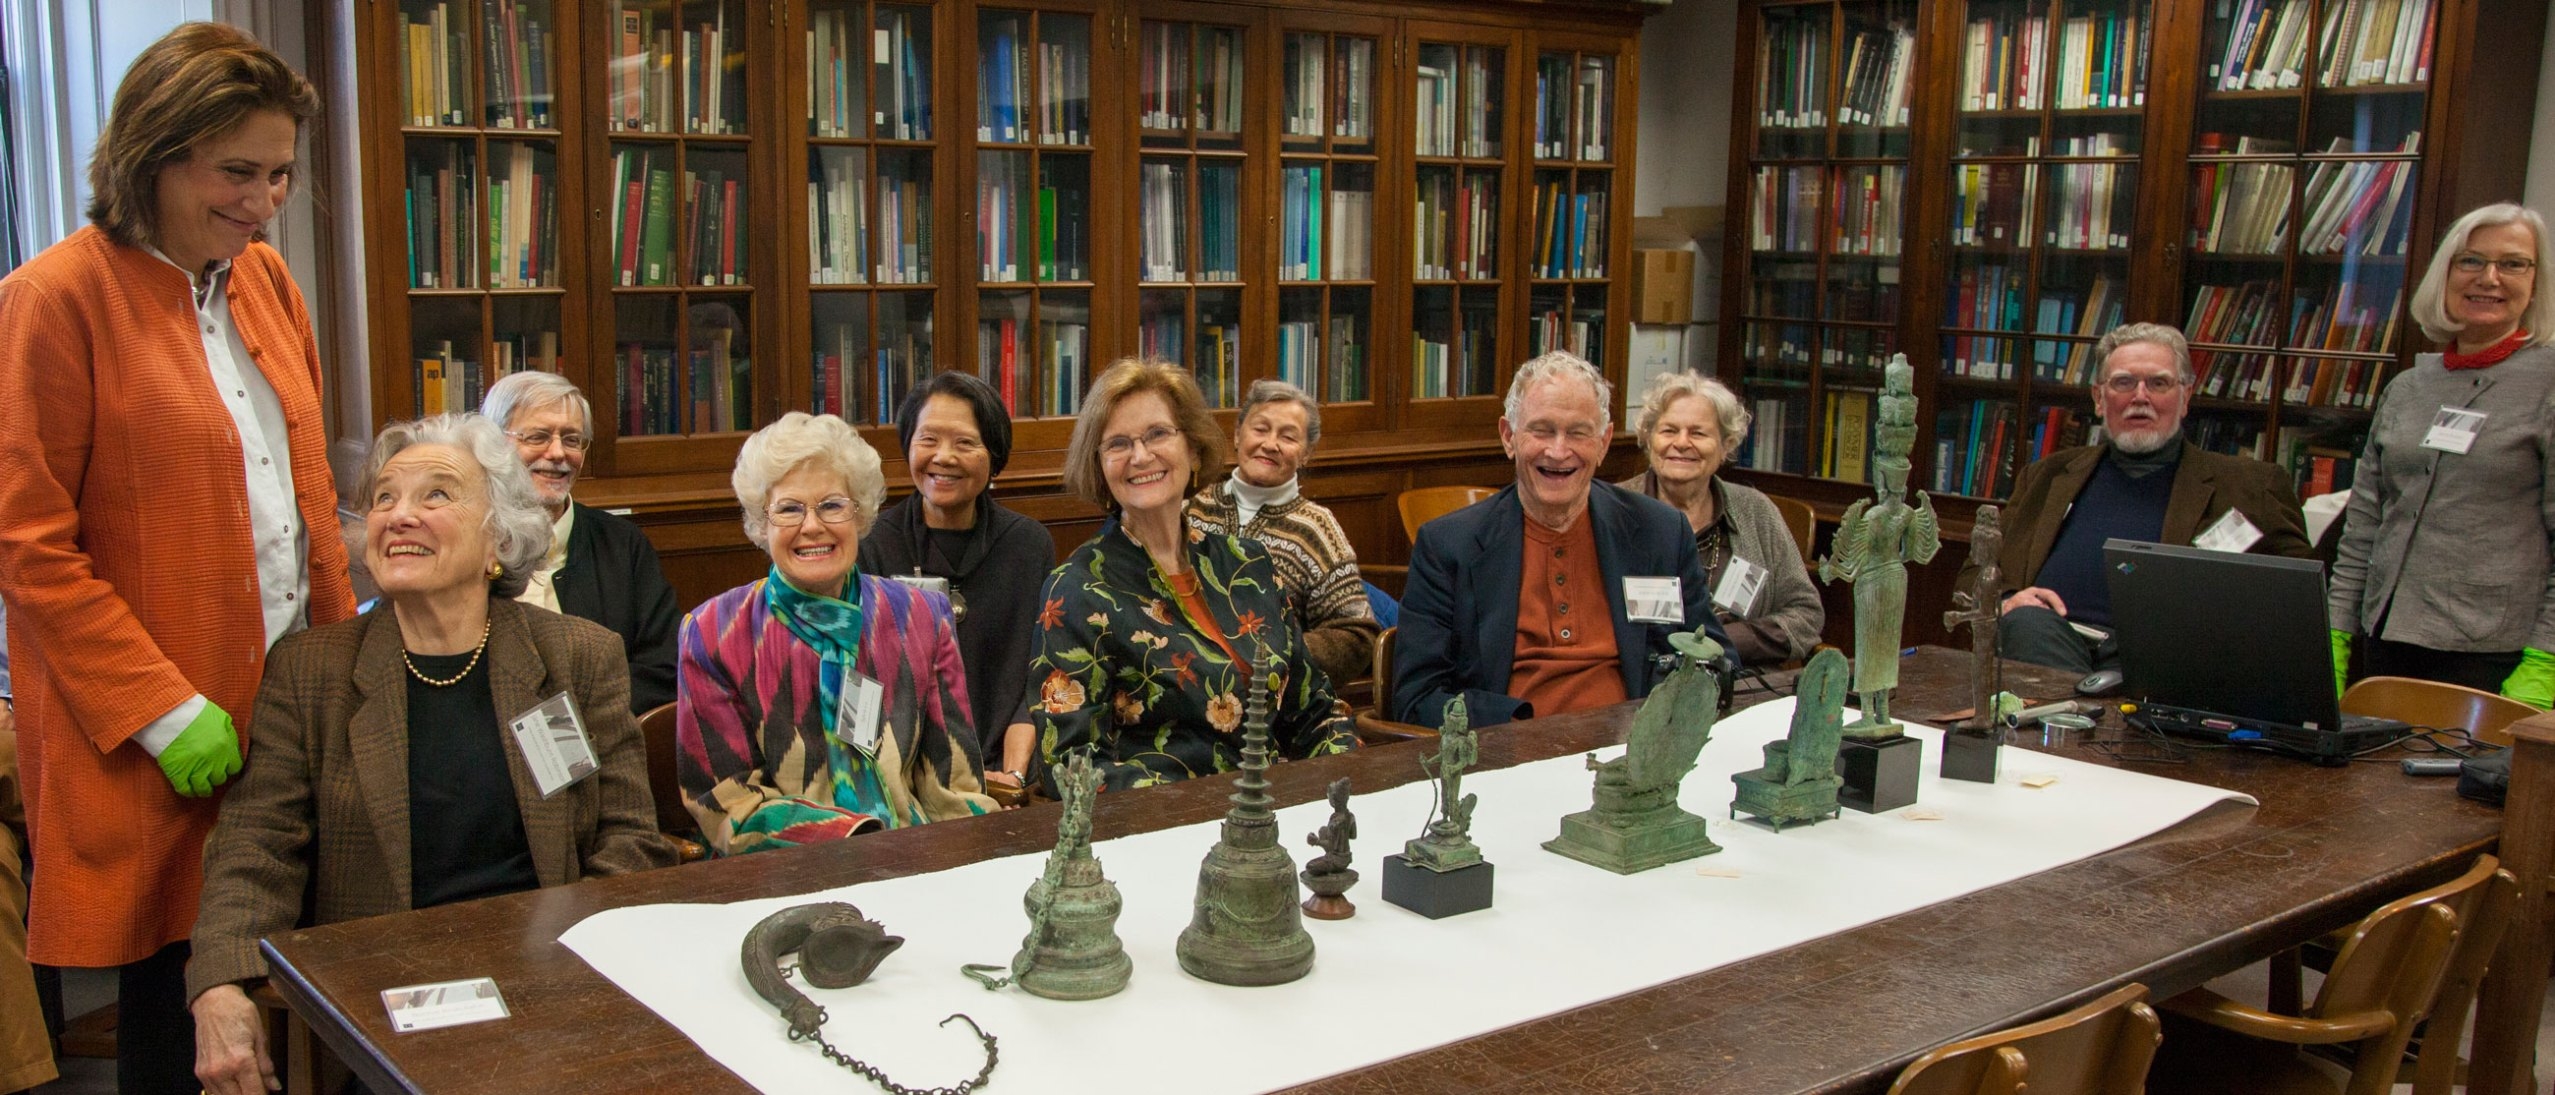 indian art curator Debra Diamond, head of conservation Donna Strahan, and the Friends in the FS Conservation library examining an array of sculpture